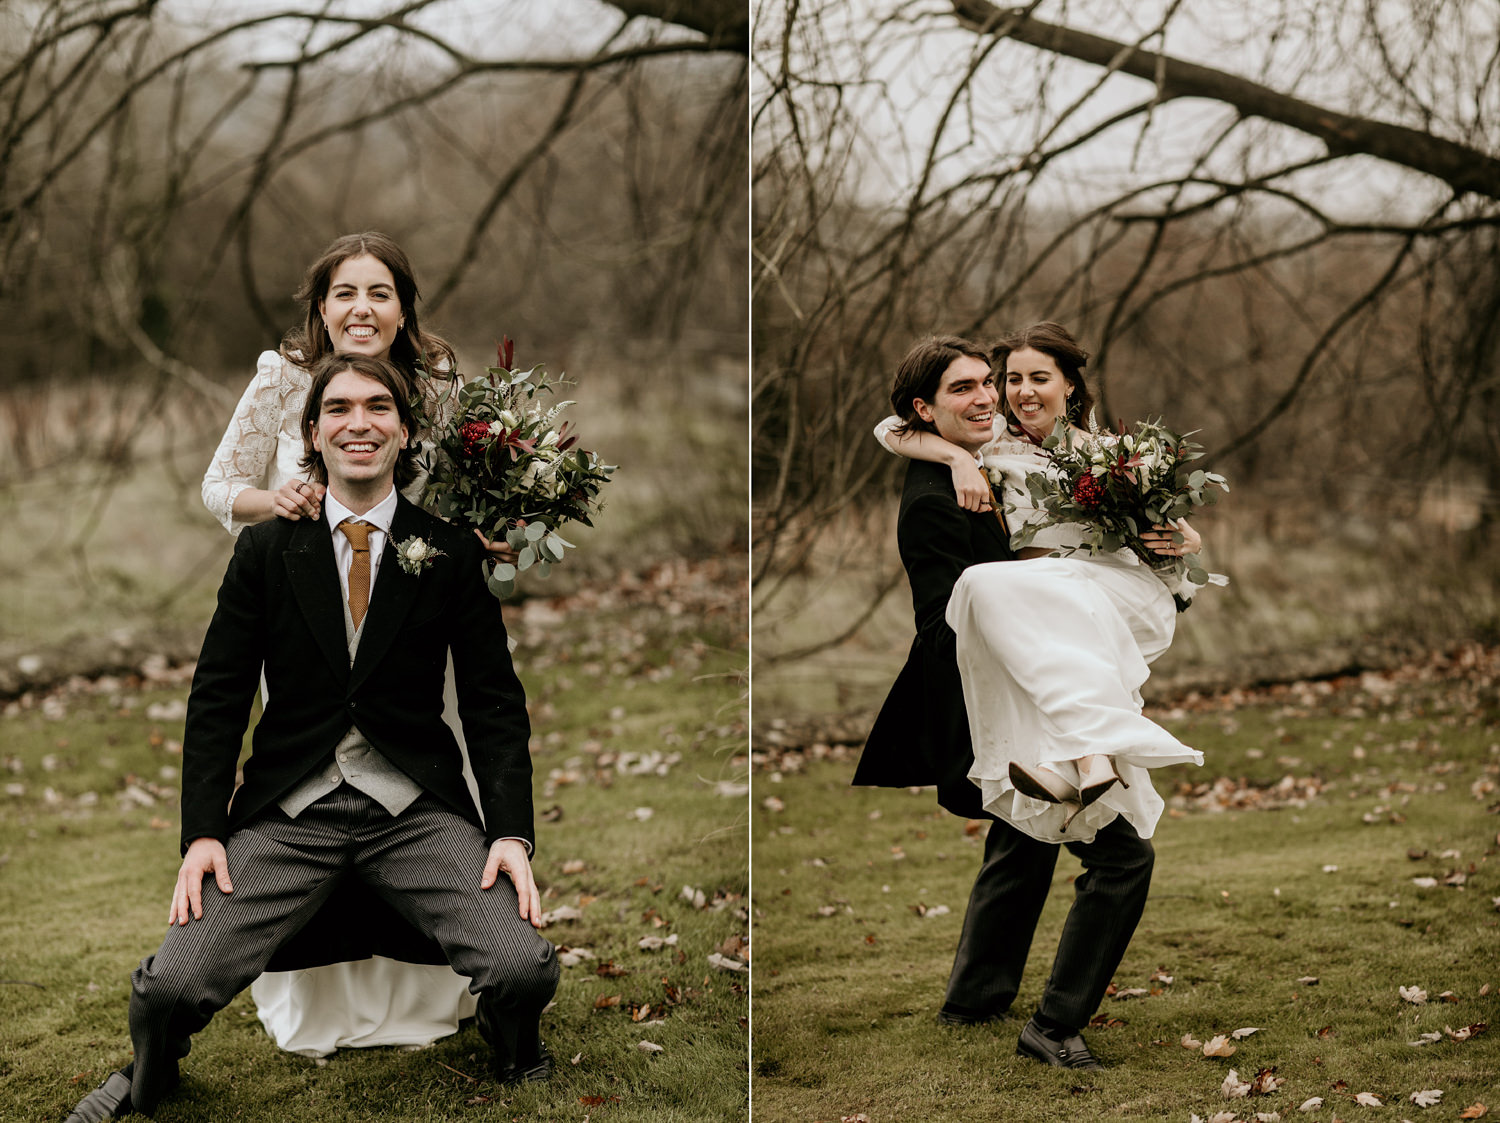 wedding portraits by Stroud wedding photographer, Green Antlers Photography